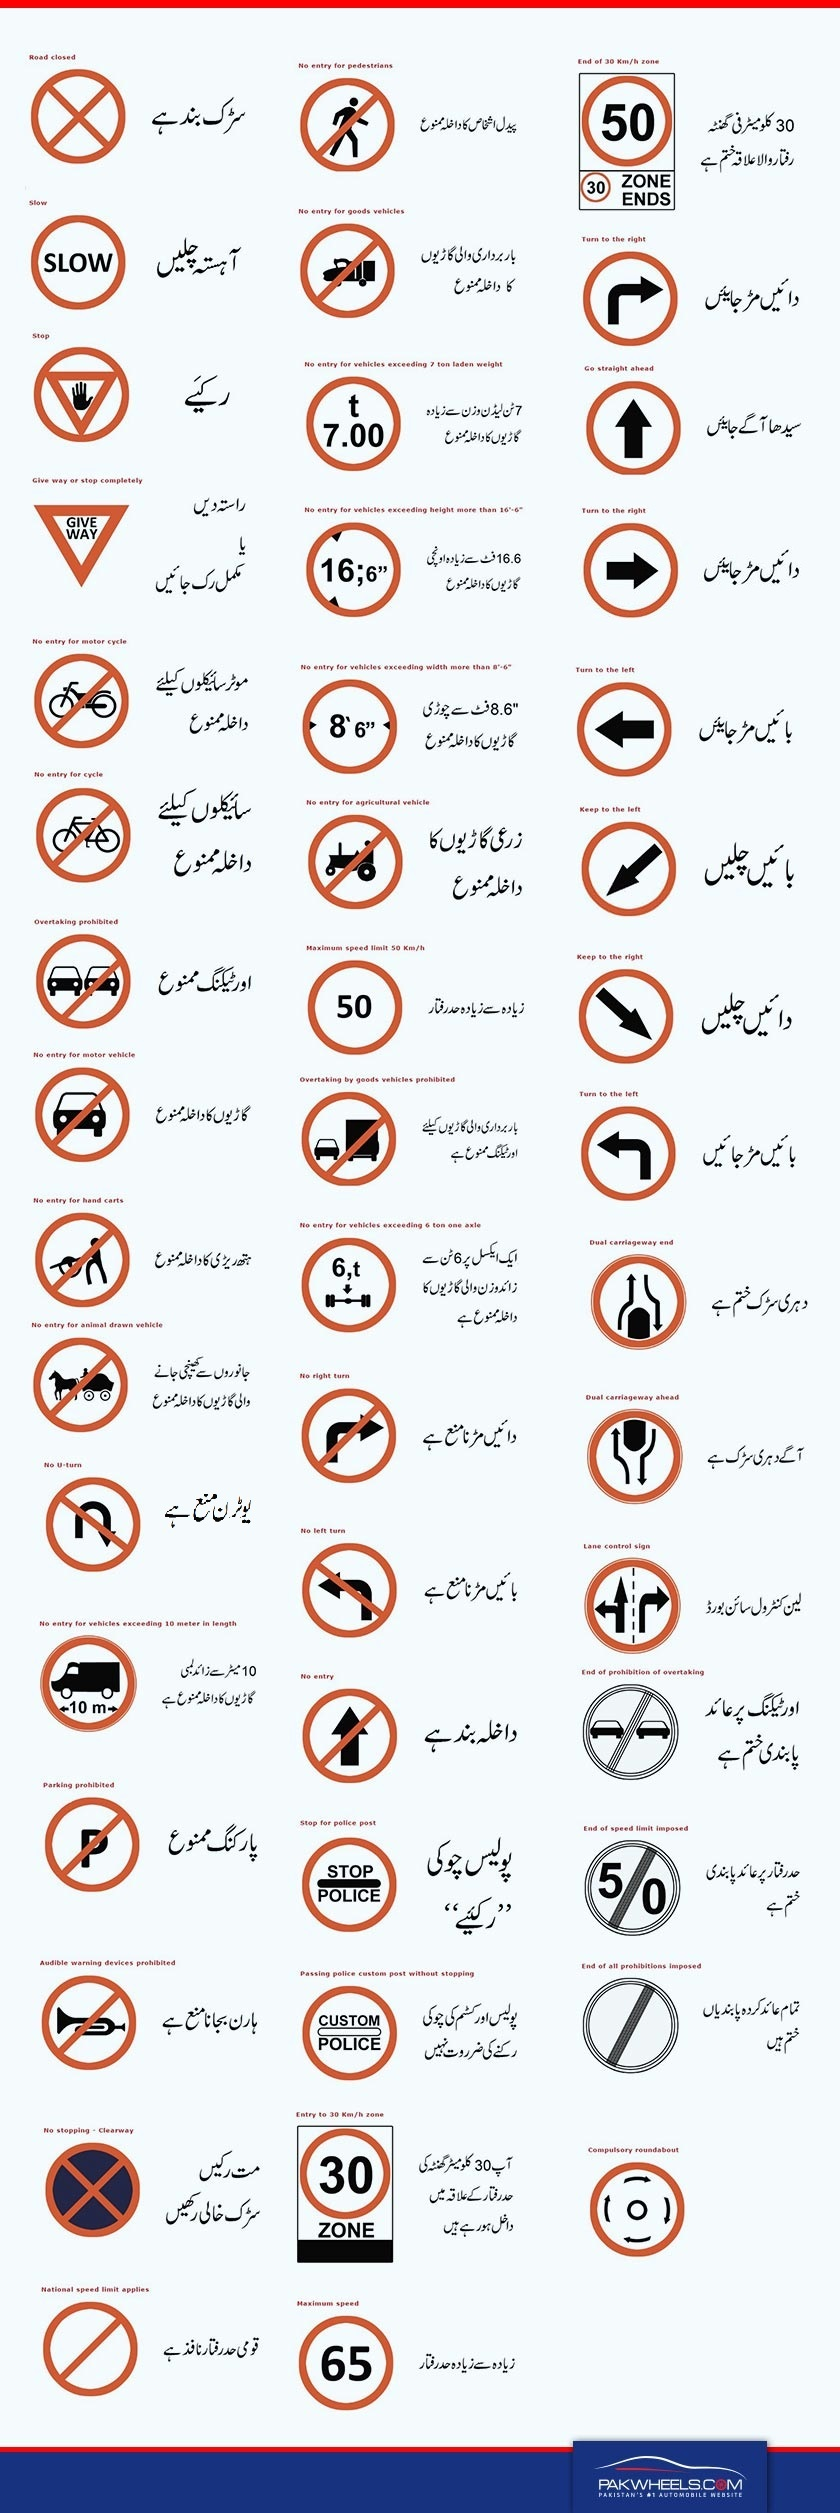 Traffic Signs A Simple Guide To Understanding Road Signs Road